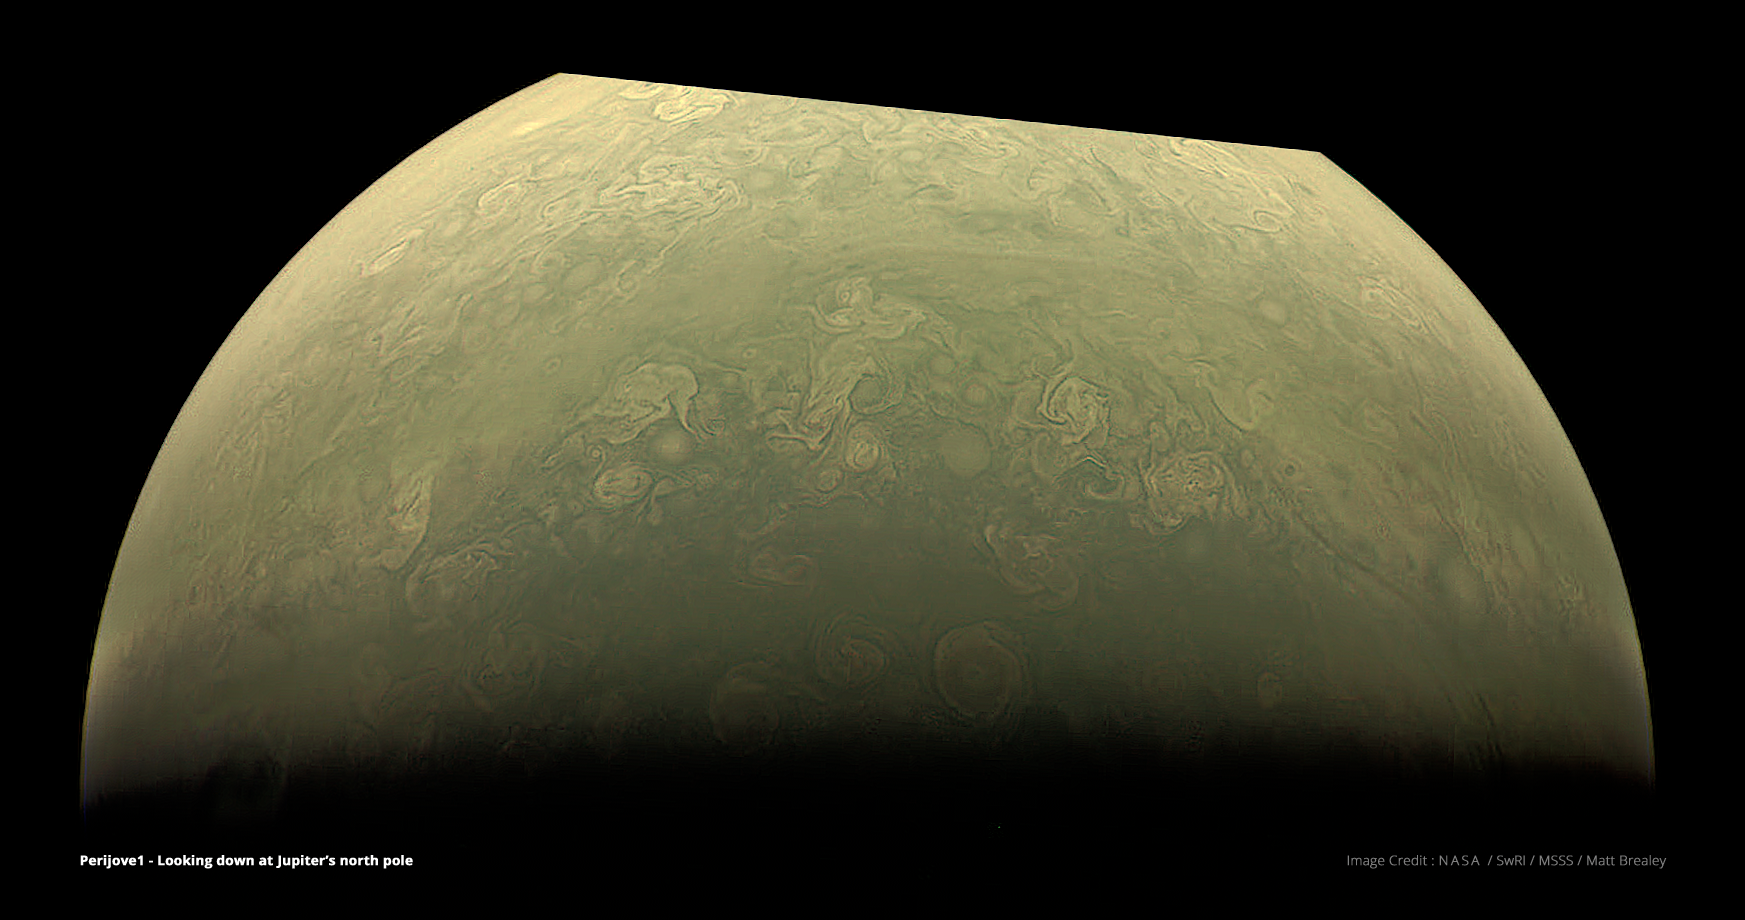 Jupiter's north pole, constructed from raw images using common Visual Effects techniques and The Foundry's Nuke compositing software. Visible compression artefacts are present in the raw data and not introduced through processing. Image Credit : NASA, SwRI, MSSS & Matt Brealey.